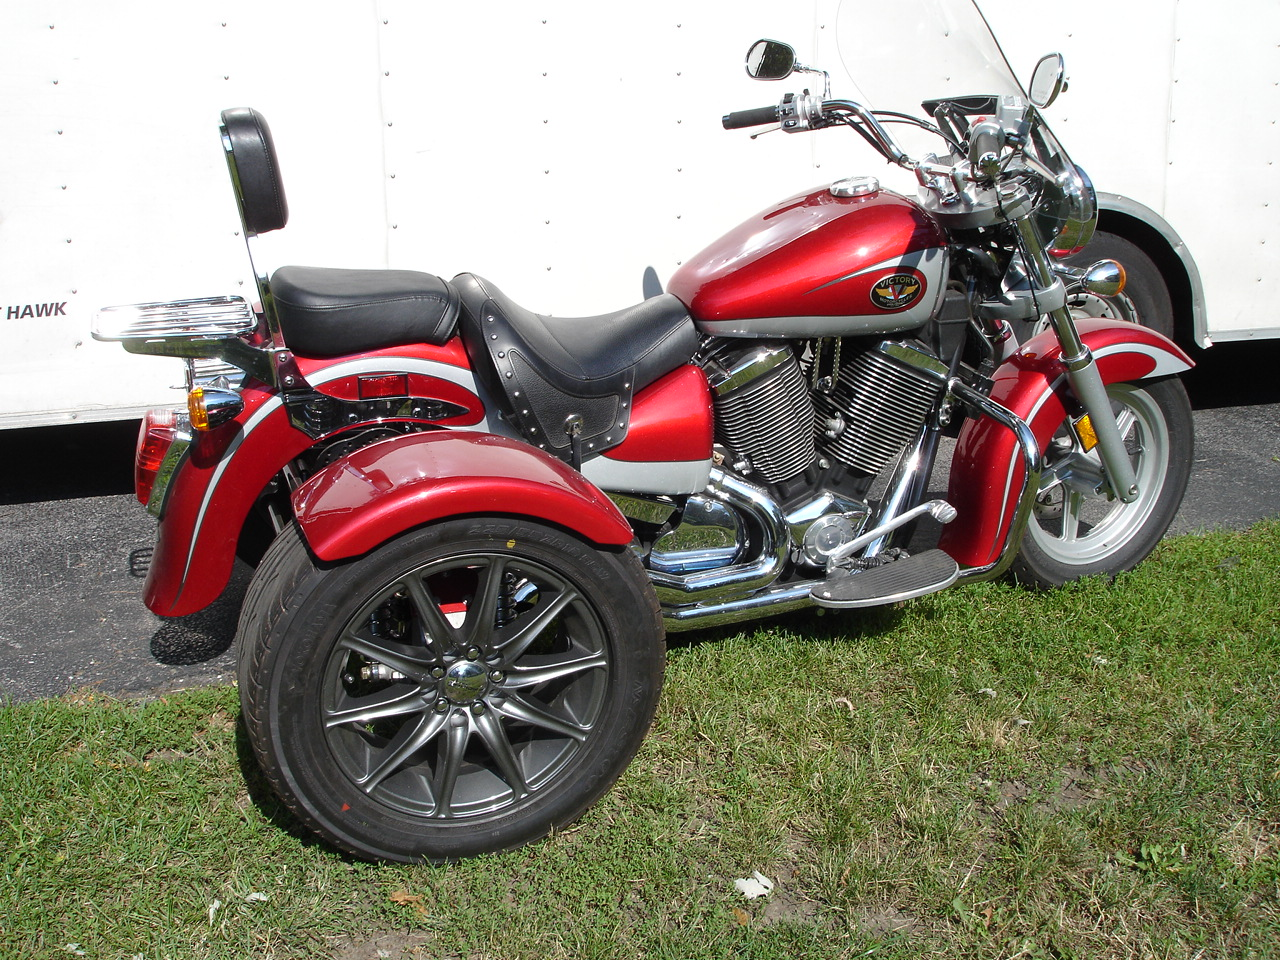 Trike Conversion Kits for Shaft Drive Motorcycles